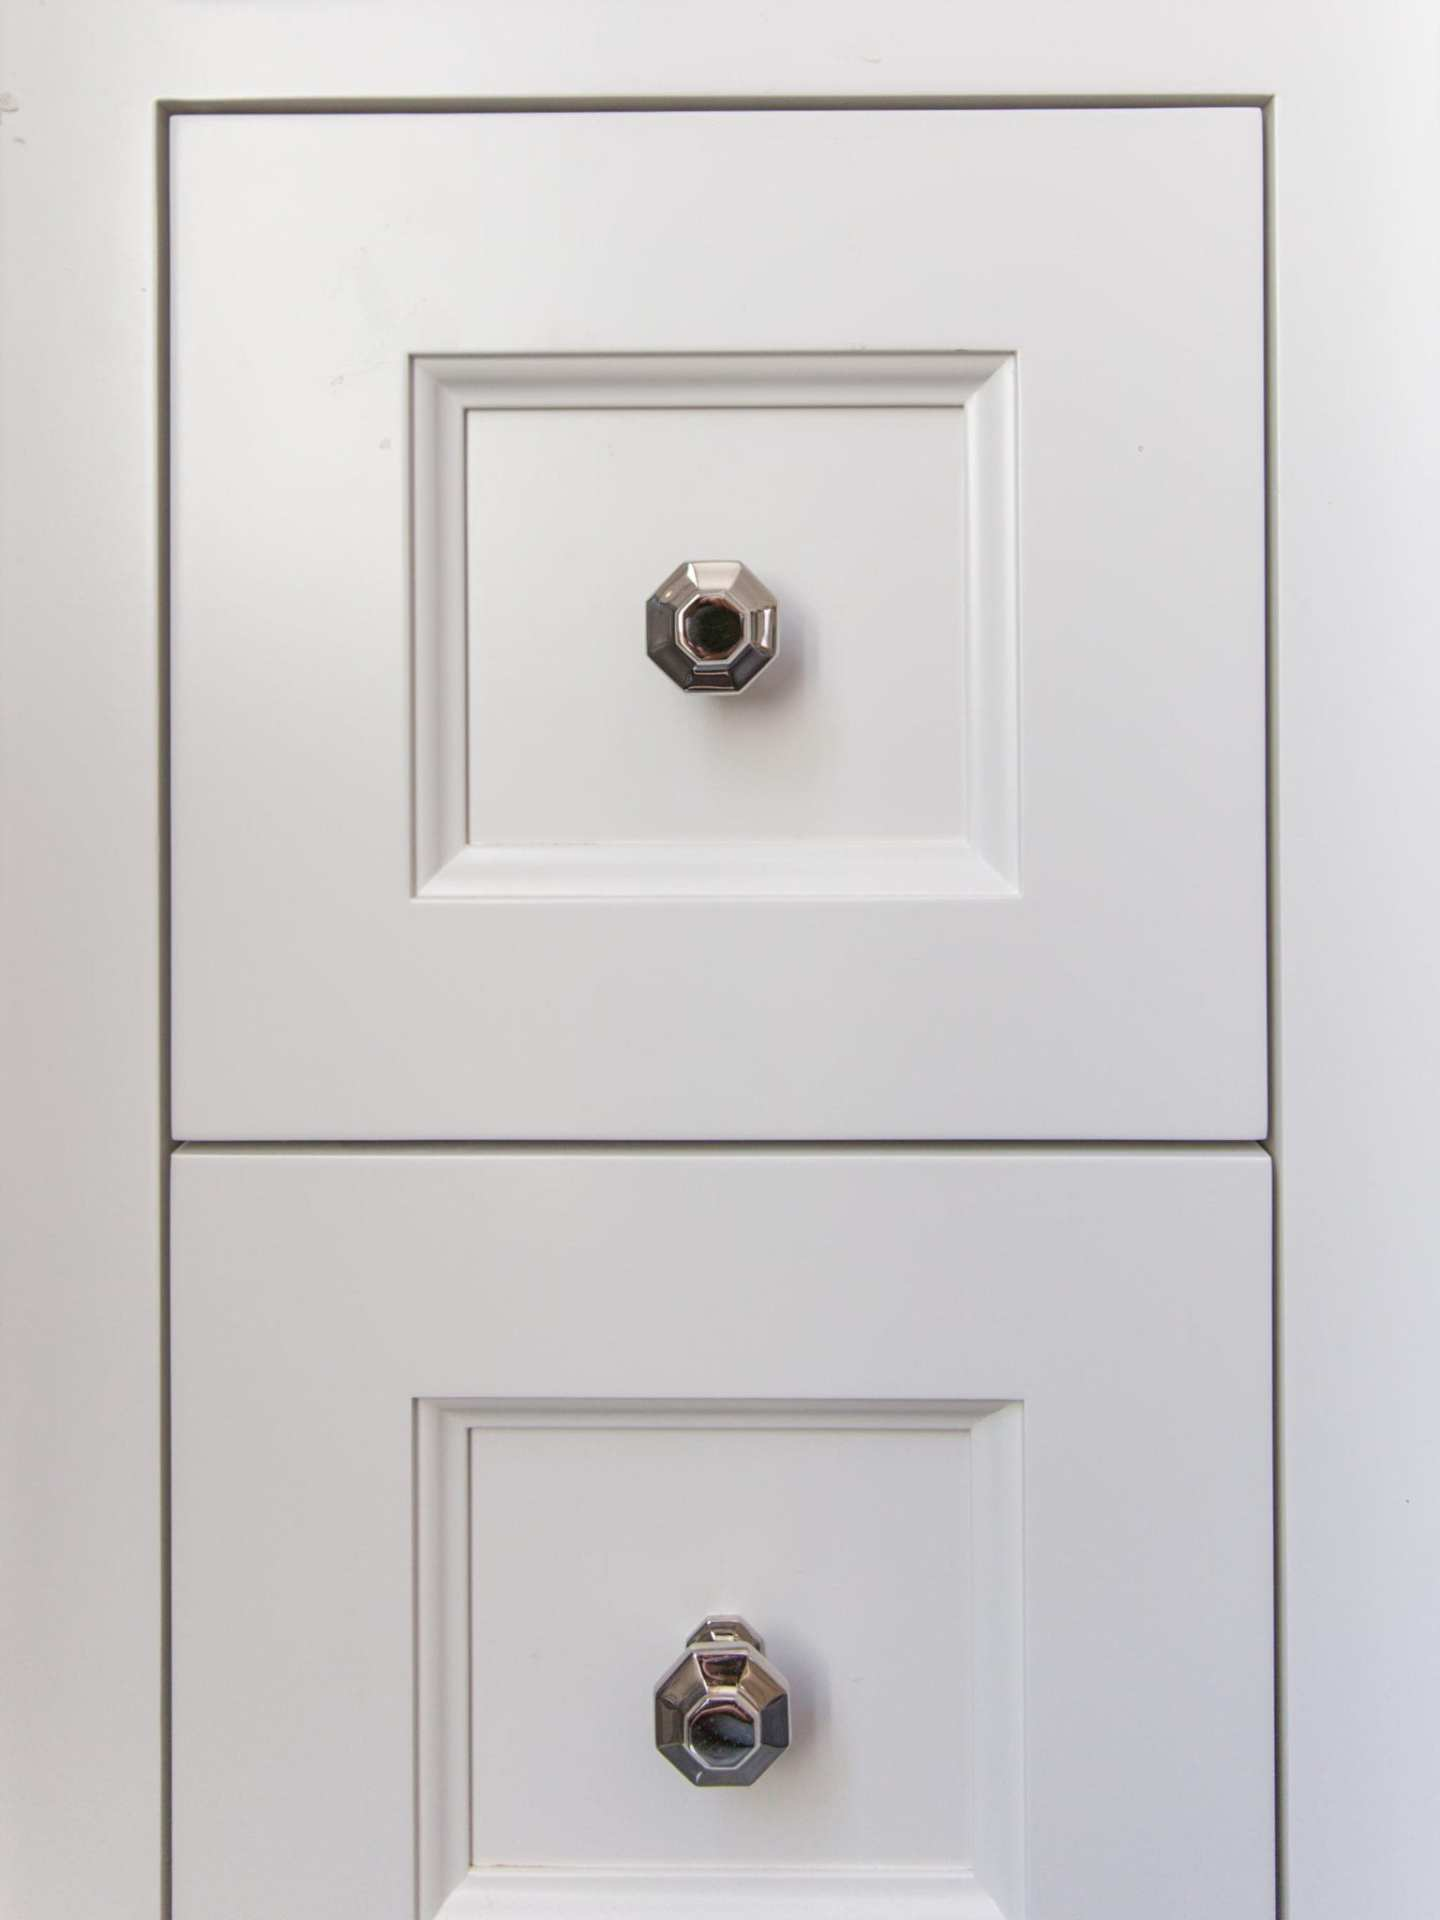 Unique pulls for bathroom. Hexagon pulls in polished nickel.